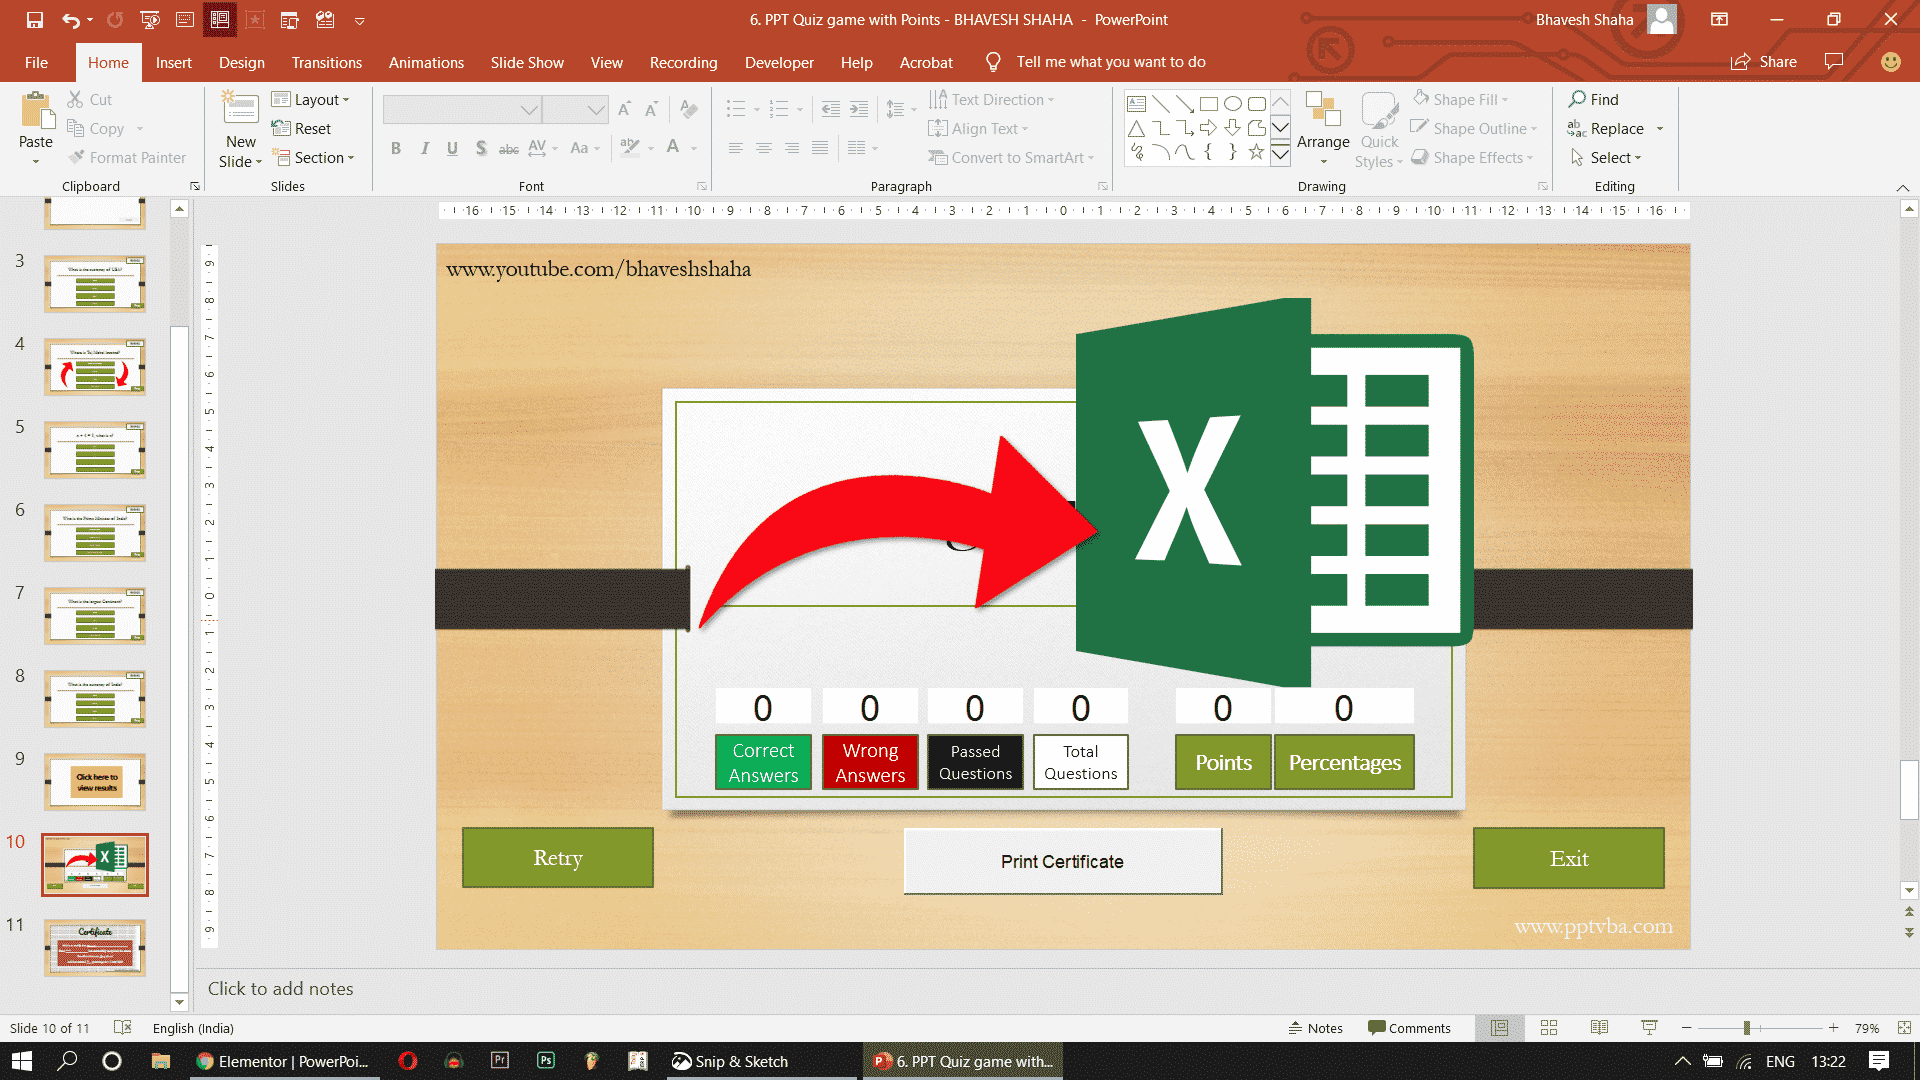 Screenshot 318 - SAVE POWERPOINT QUIZ RESULTS TO EXCEL SHEET